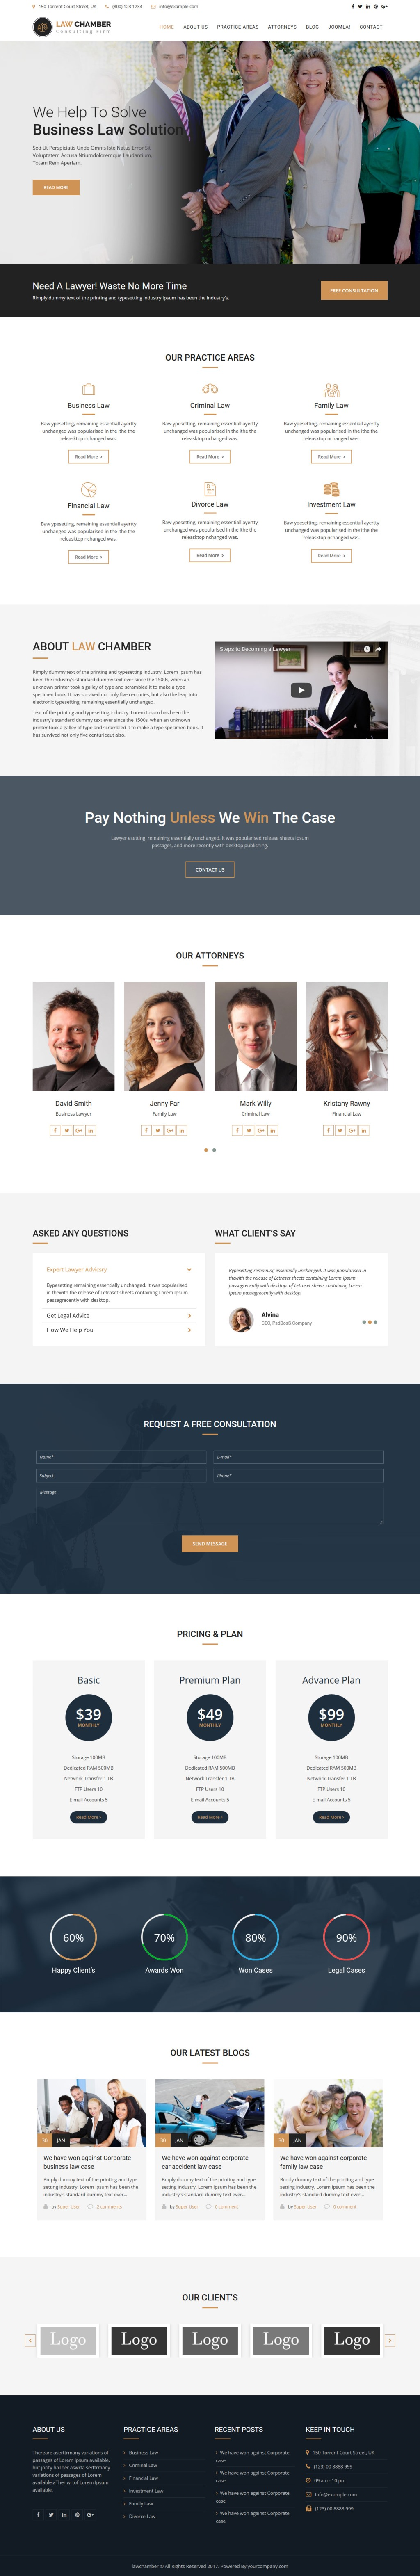 law chamber joomla template 01 - law-chamber-joomla-template-01